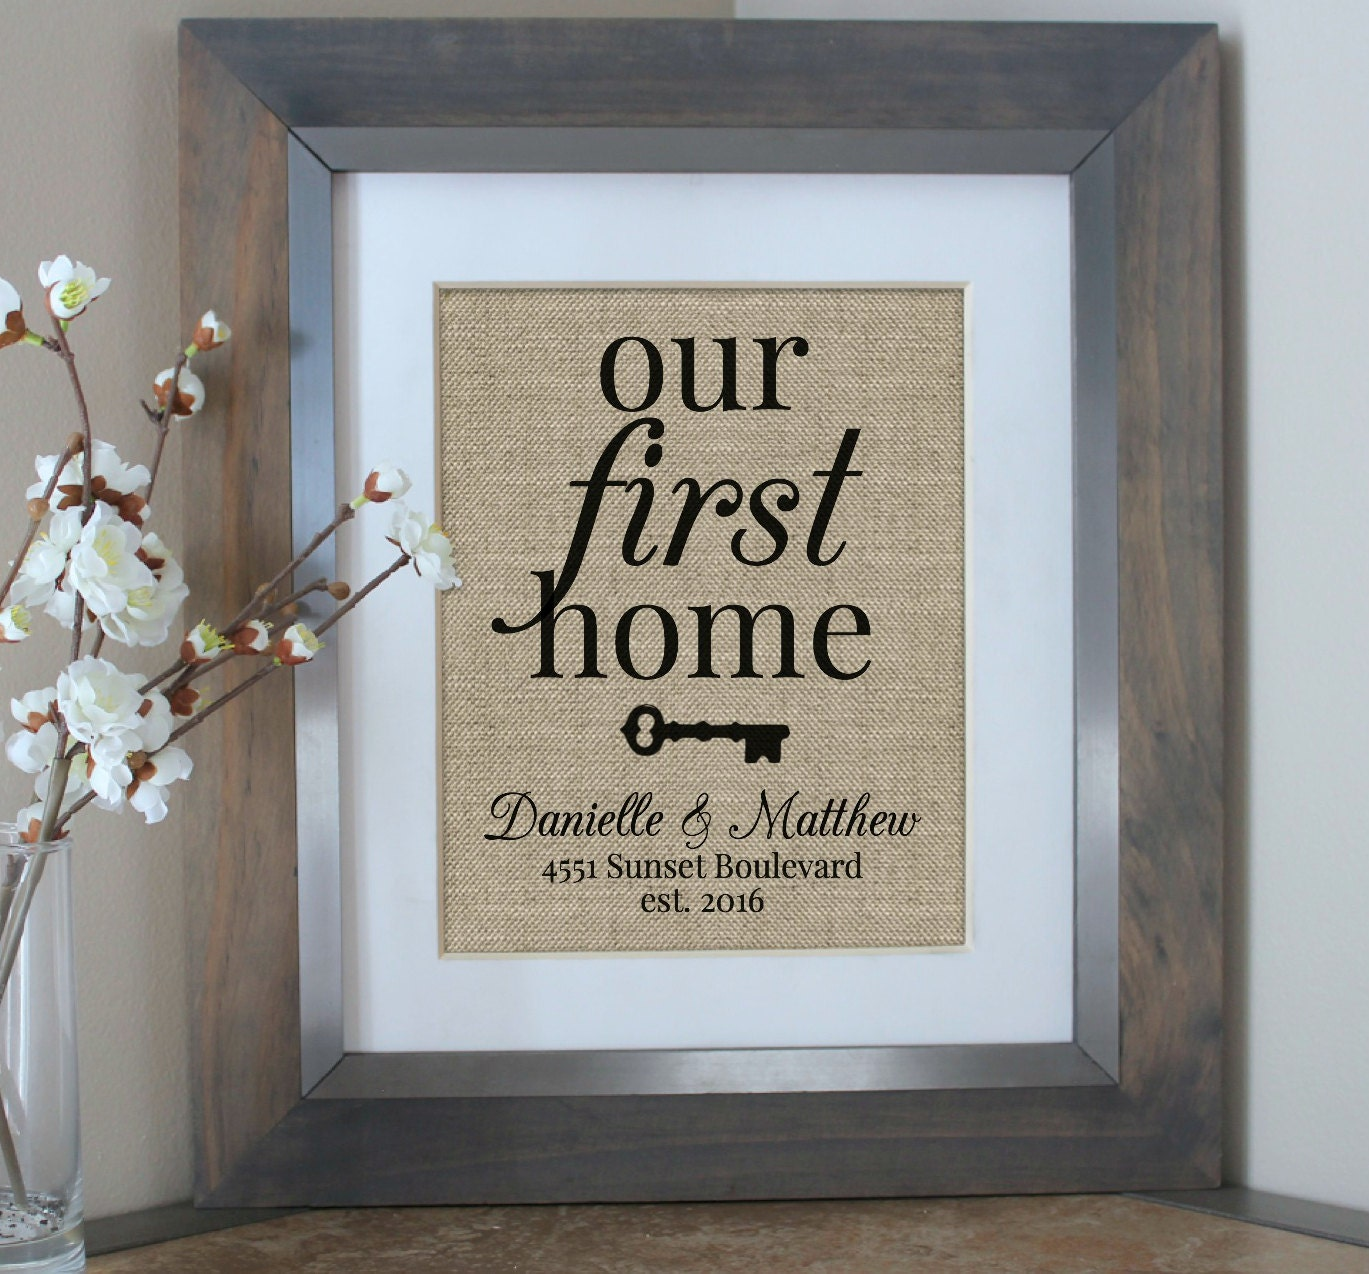 Personalised Home Is Where New Home Gift Print By: Our First Home New Home Housewarming Gift Burlap Print